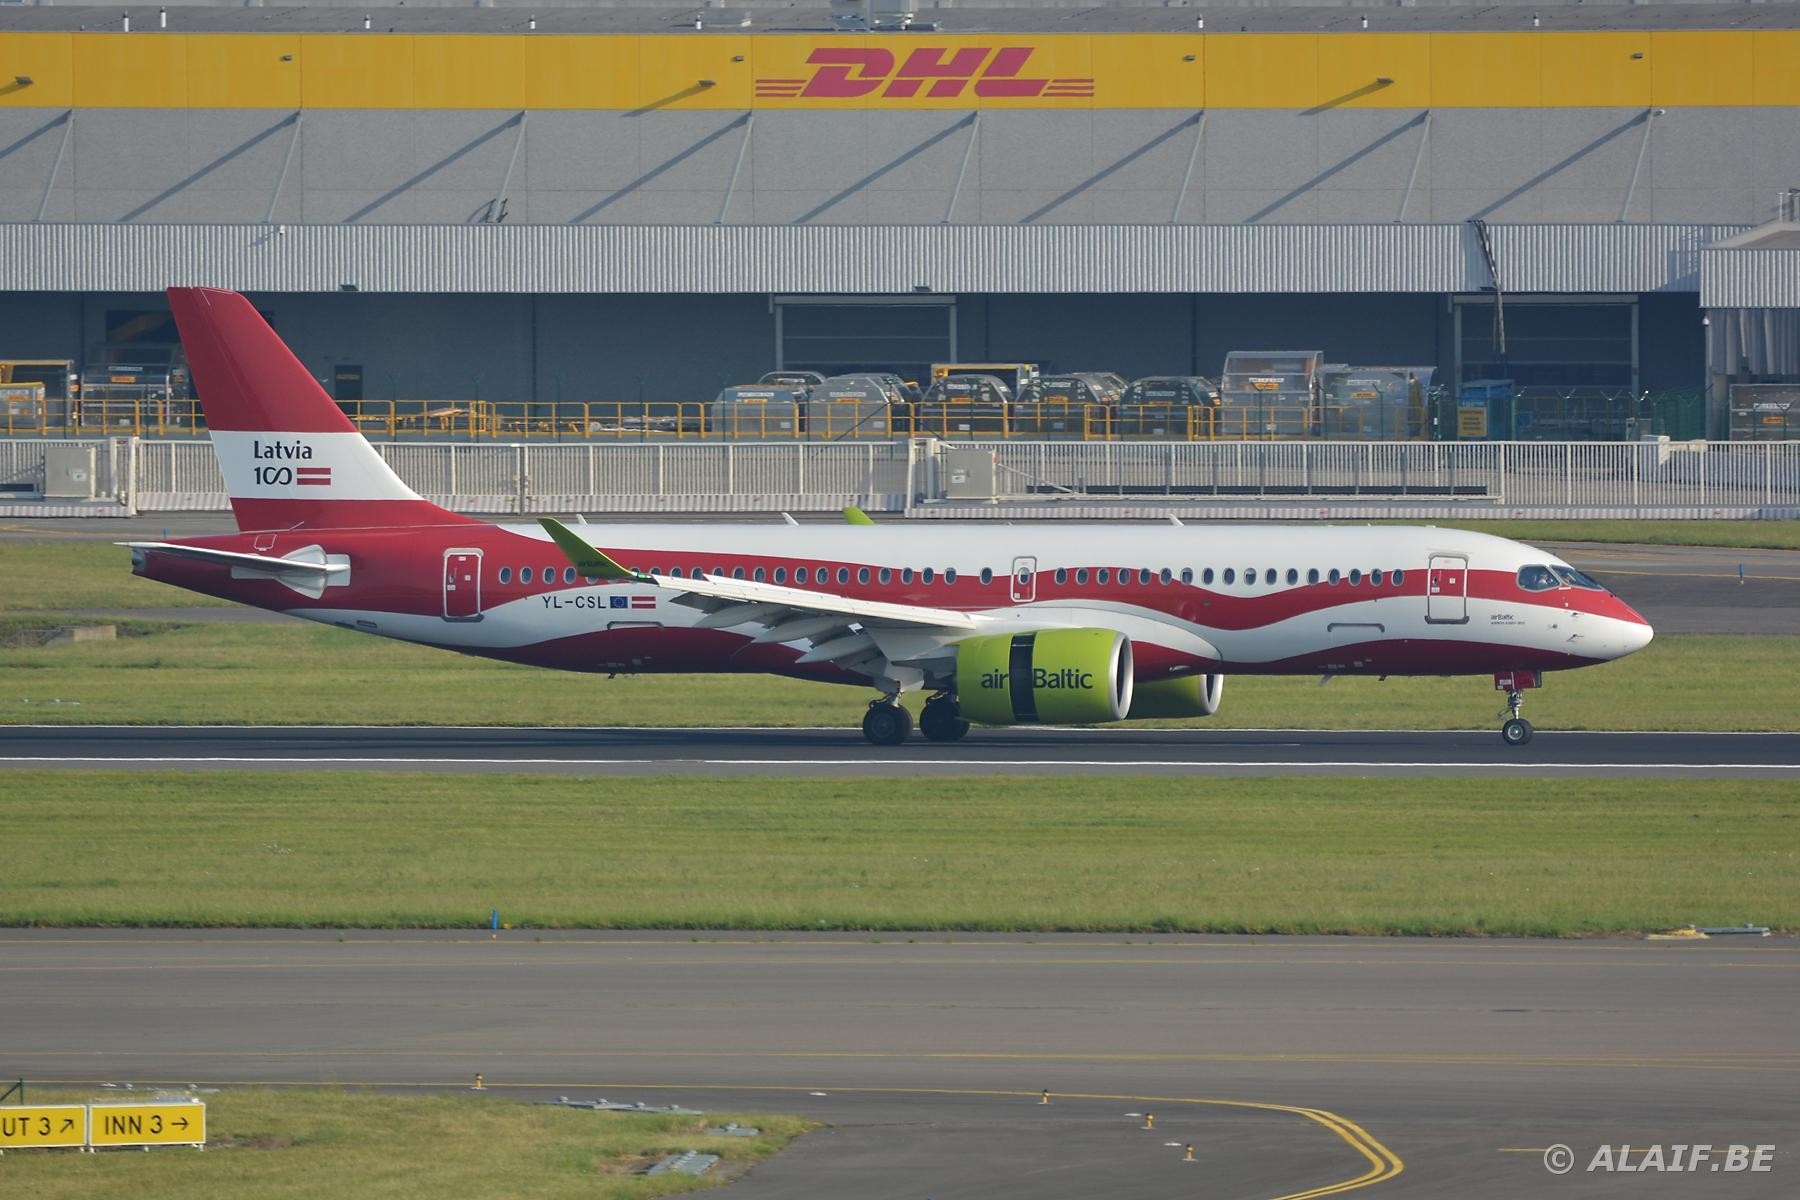 Special livery - First A220 picture on this site